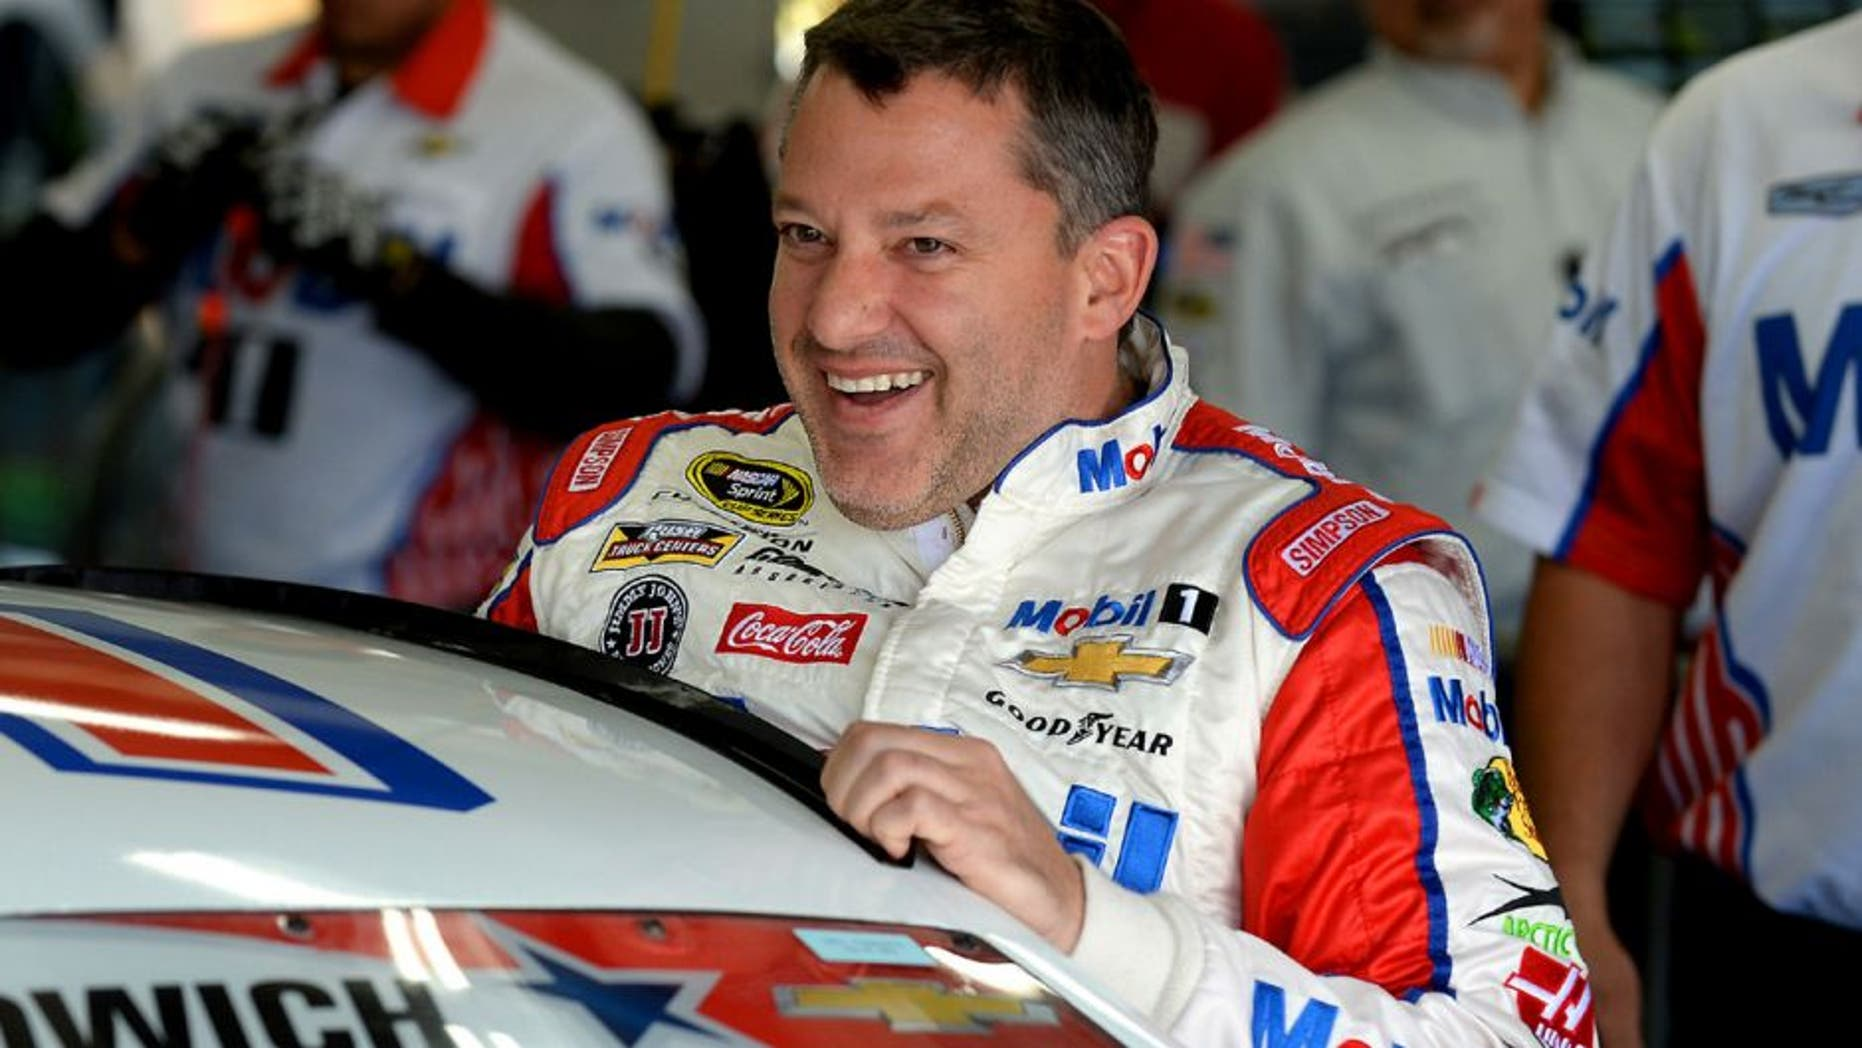 NASCAR Sprint Cup Series driver Tony Stewart laughs with members of his team as he climbs into his car for practice at Charlotte Motor Speedway in Concord, N.C., on Thursday, May 26, 2016. (Jeff Siner/Charlotte Observer/TNS via Getty Images)